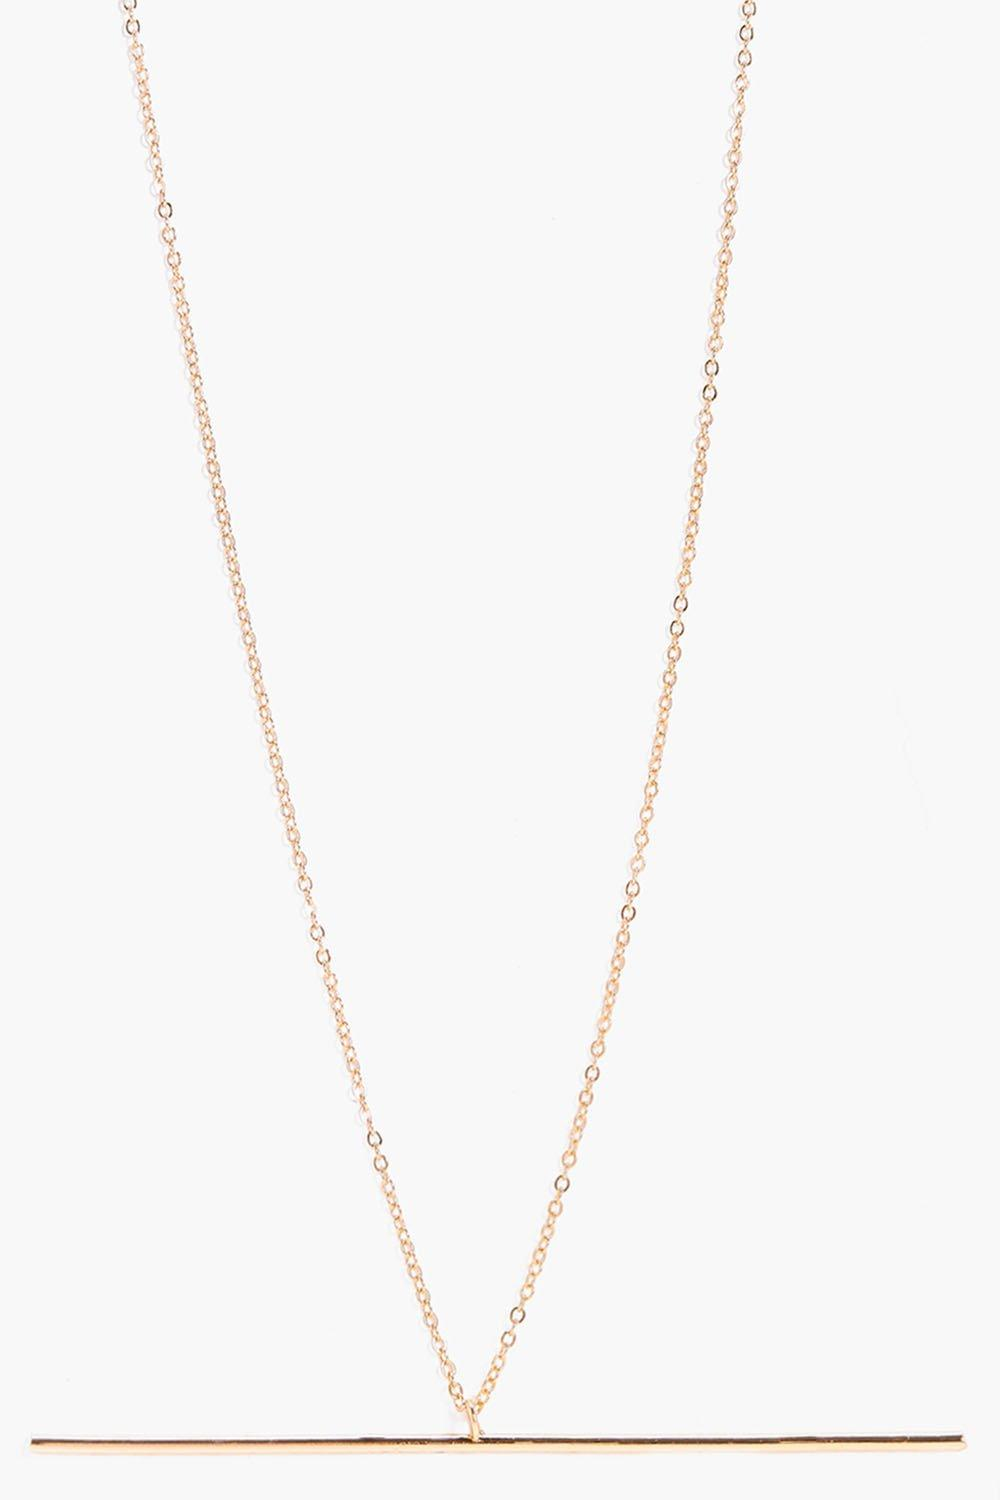 Lara Fine Bar Skinny Necklace